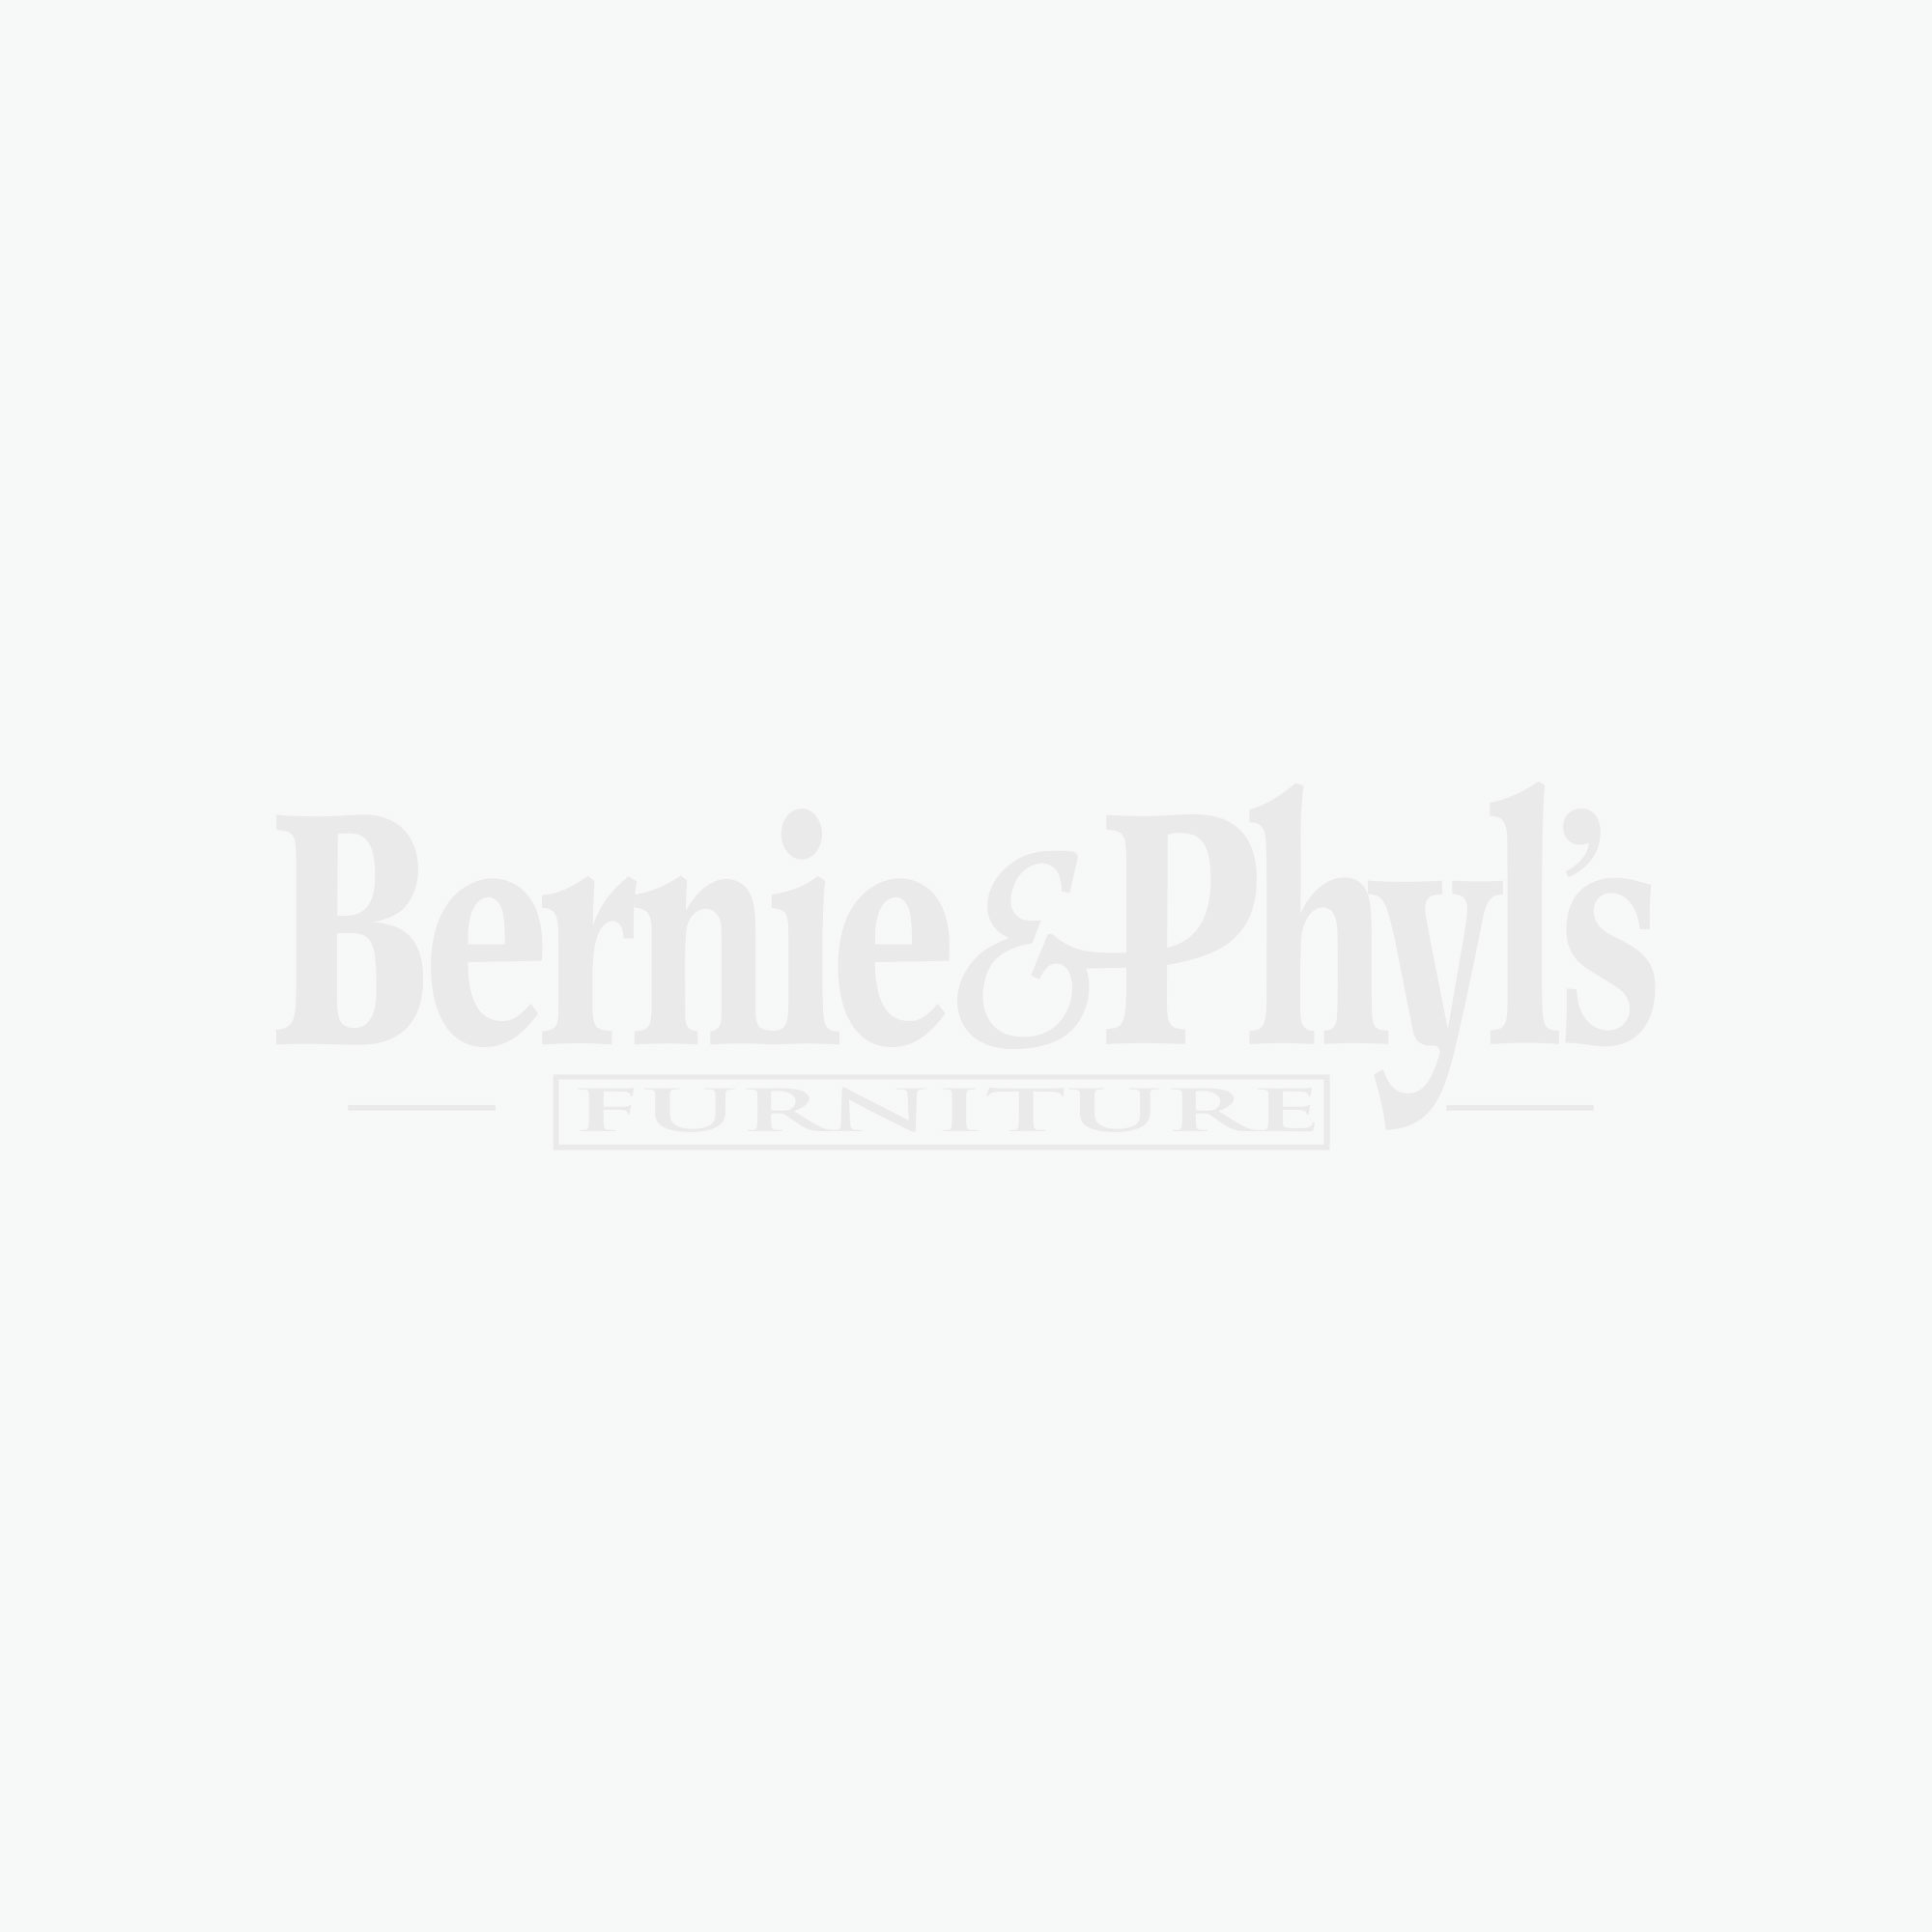 BunkHouse Twin Bunk Bed